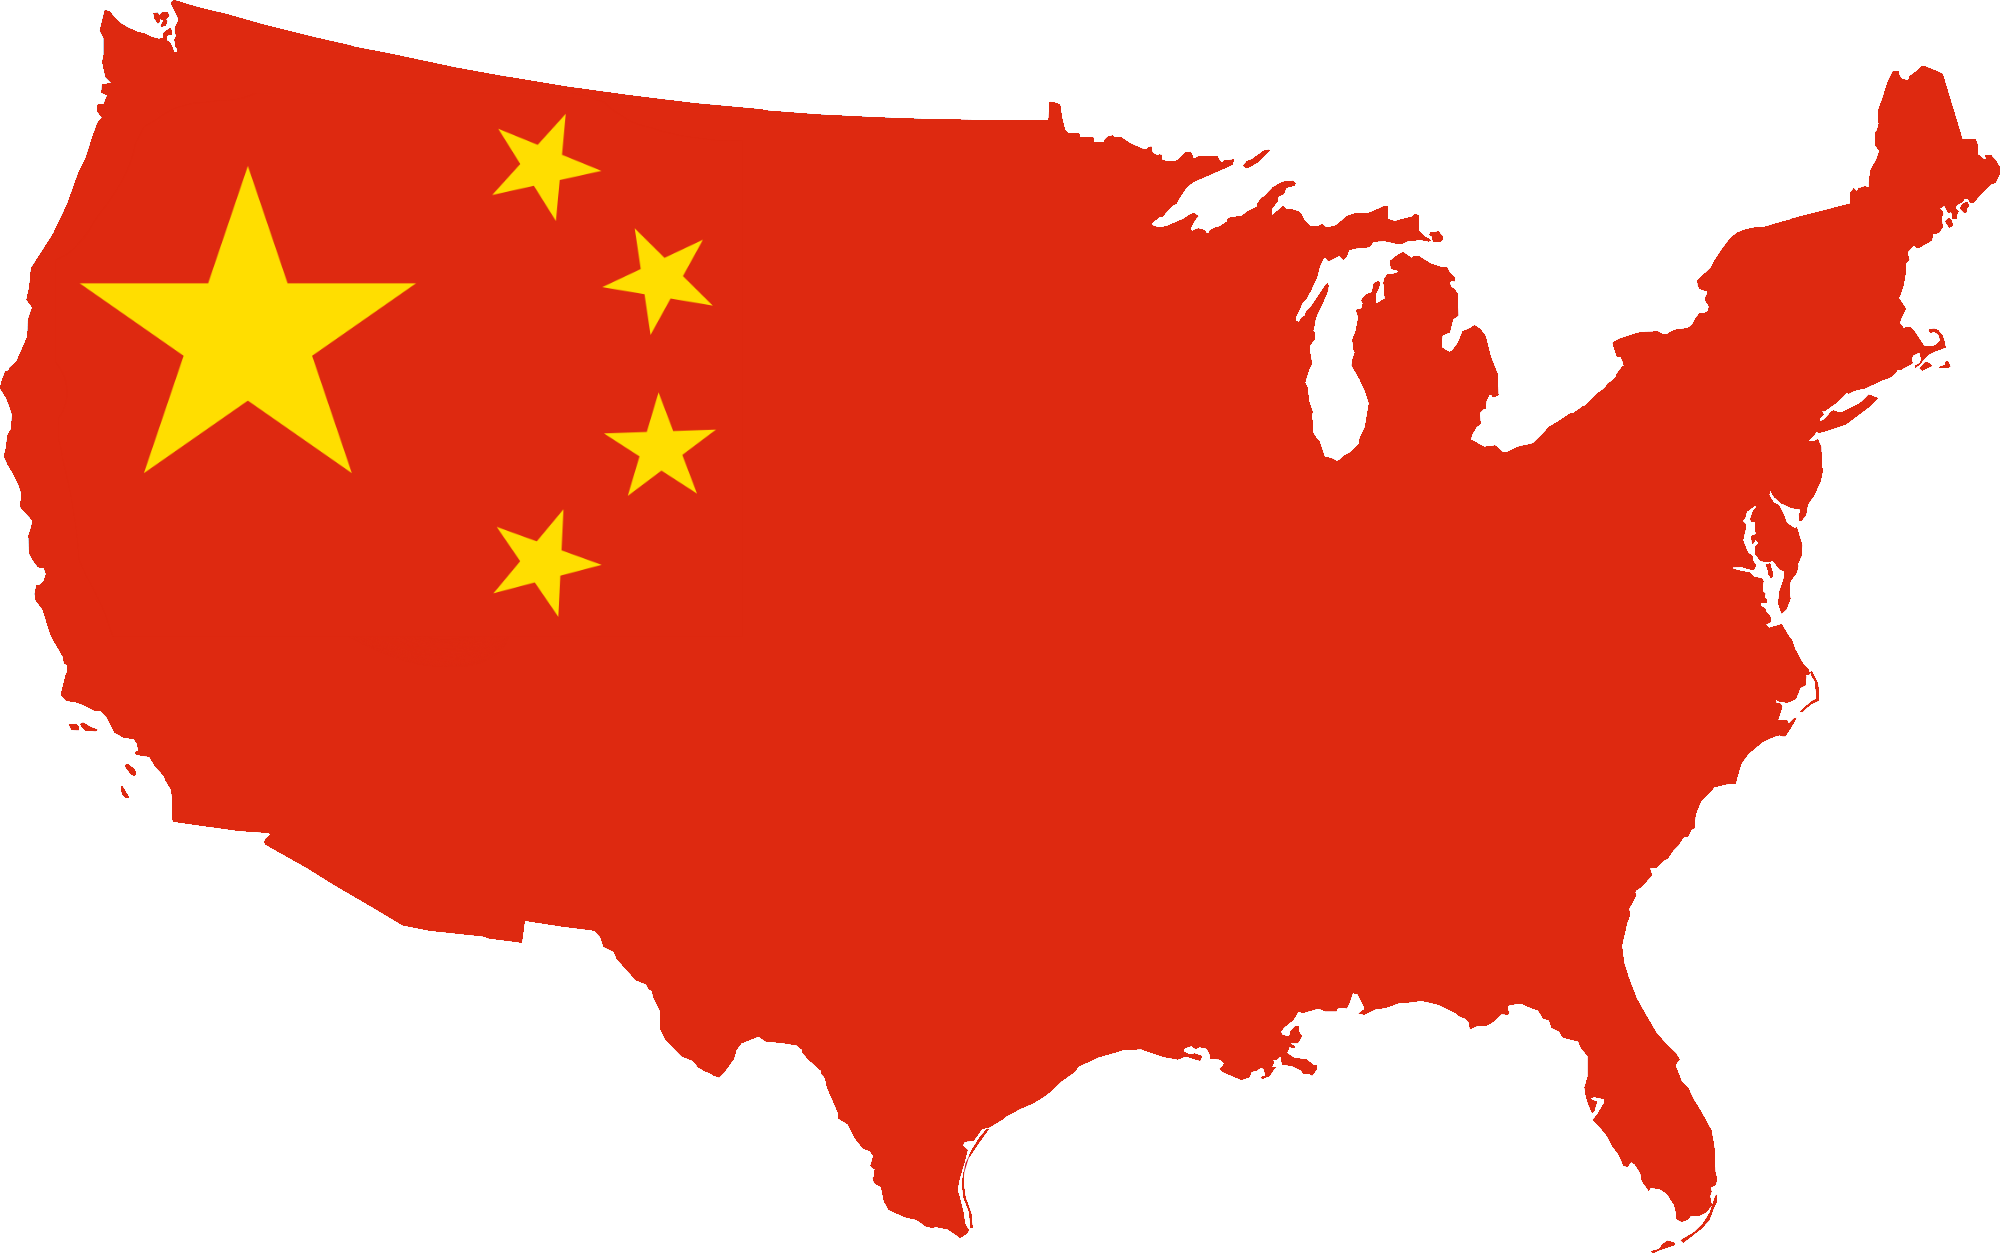 China Map on a Territory of USA